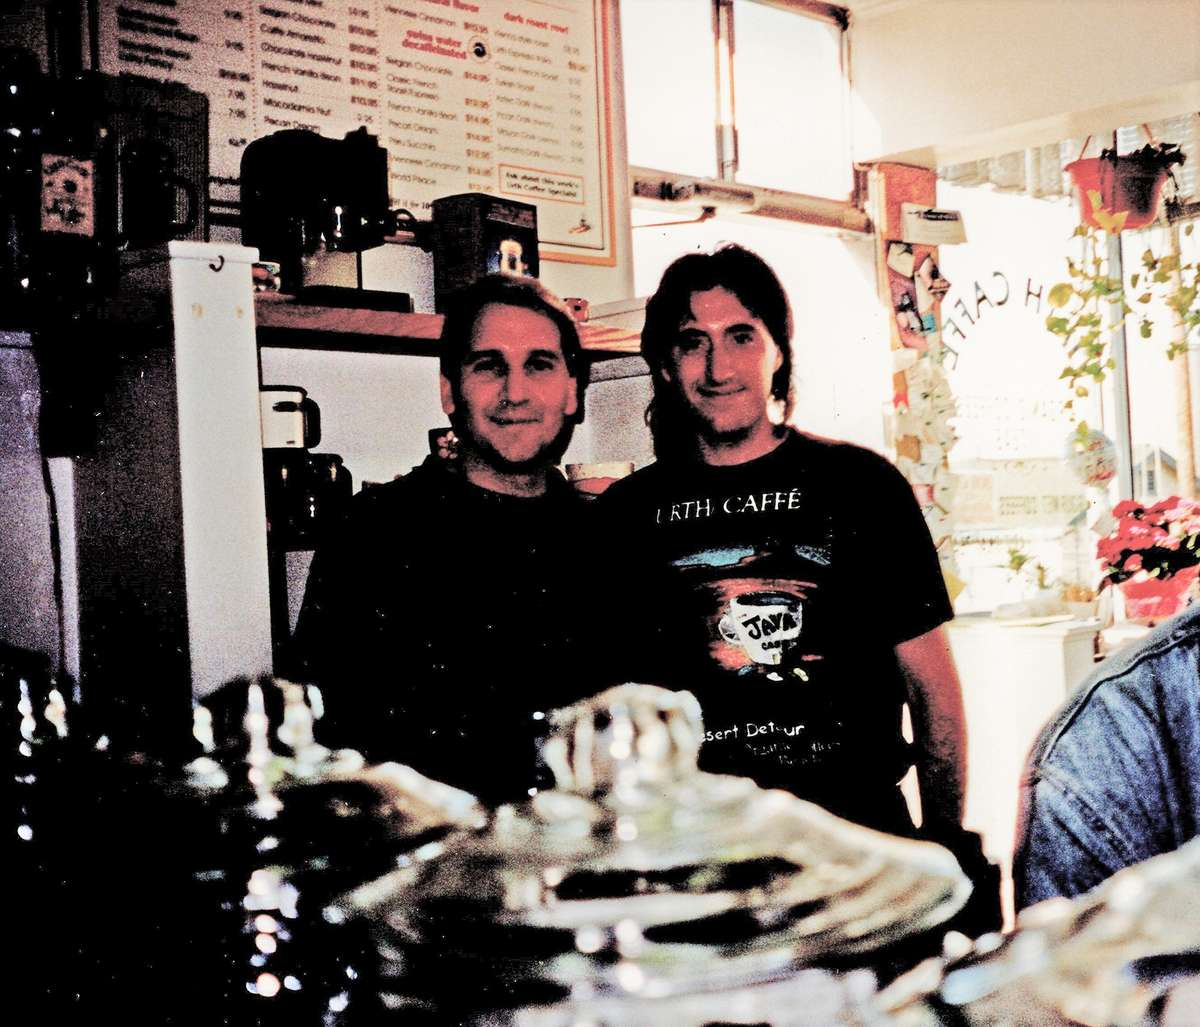 Two men stand in middle of photo inside caffe